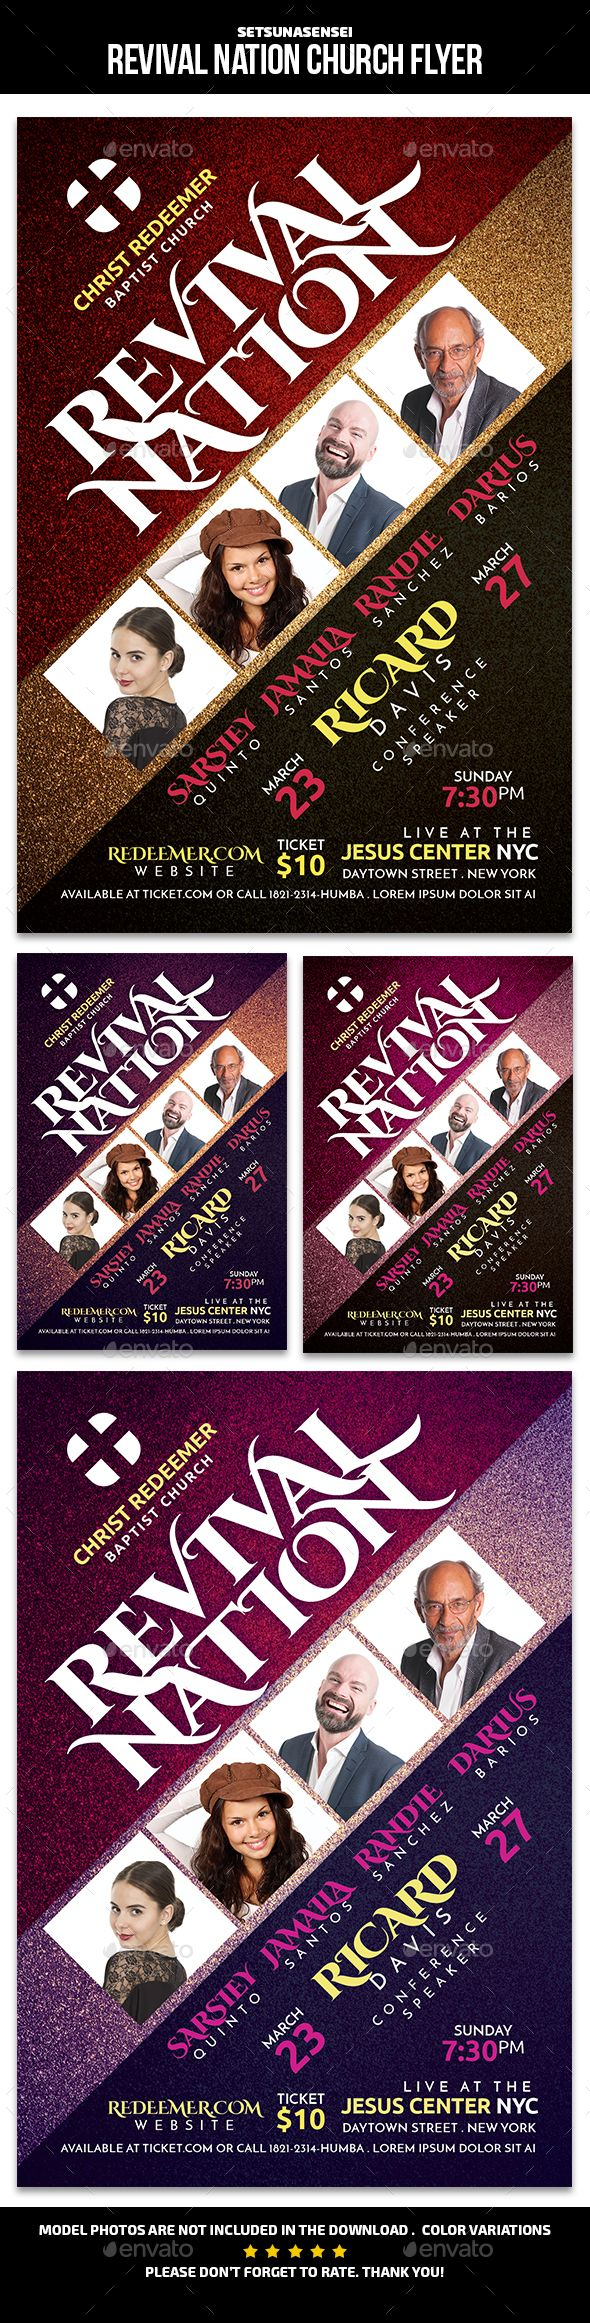 Revival Nation Church Flyer Church Flyers Flyer Pinterest